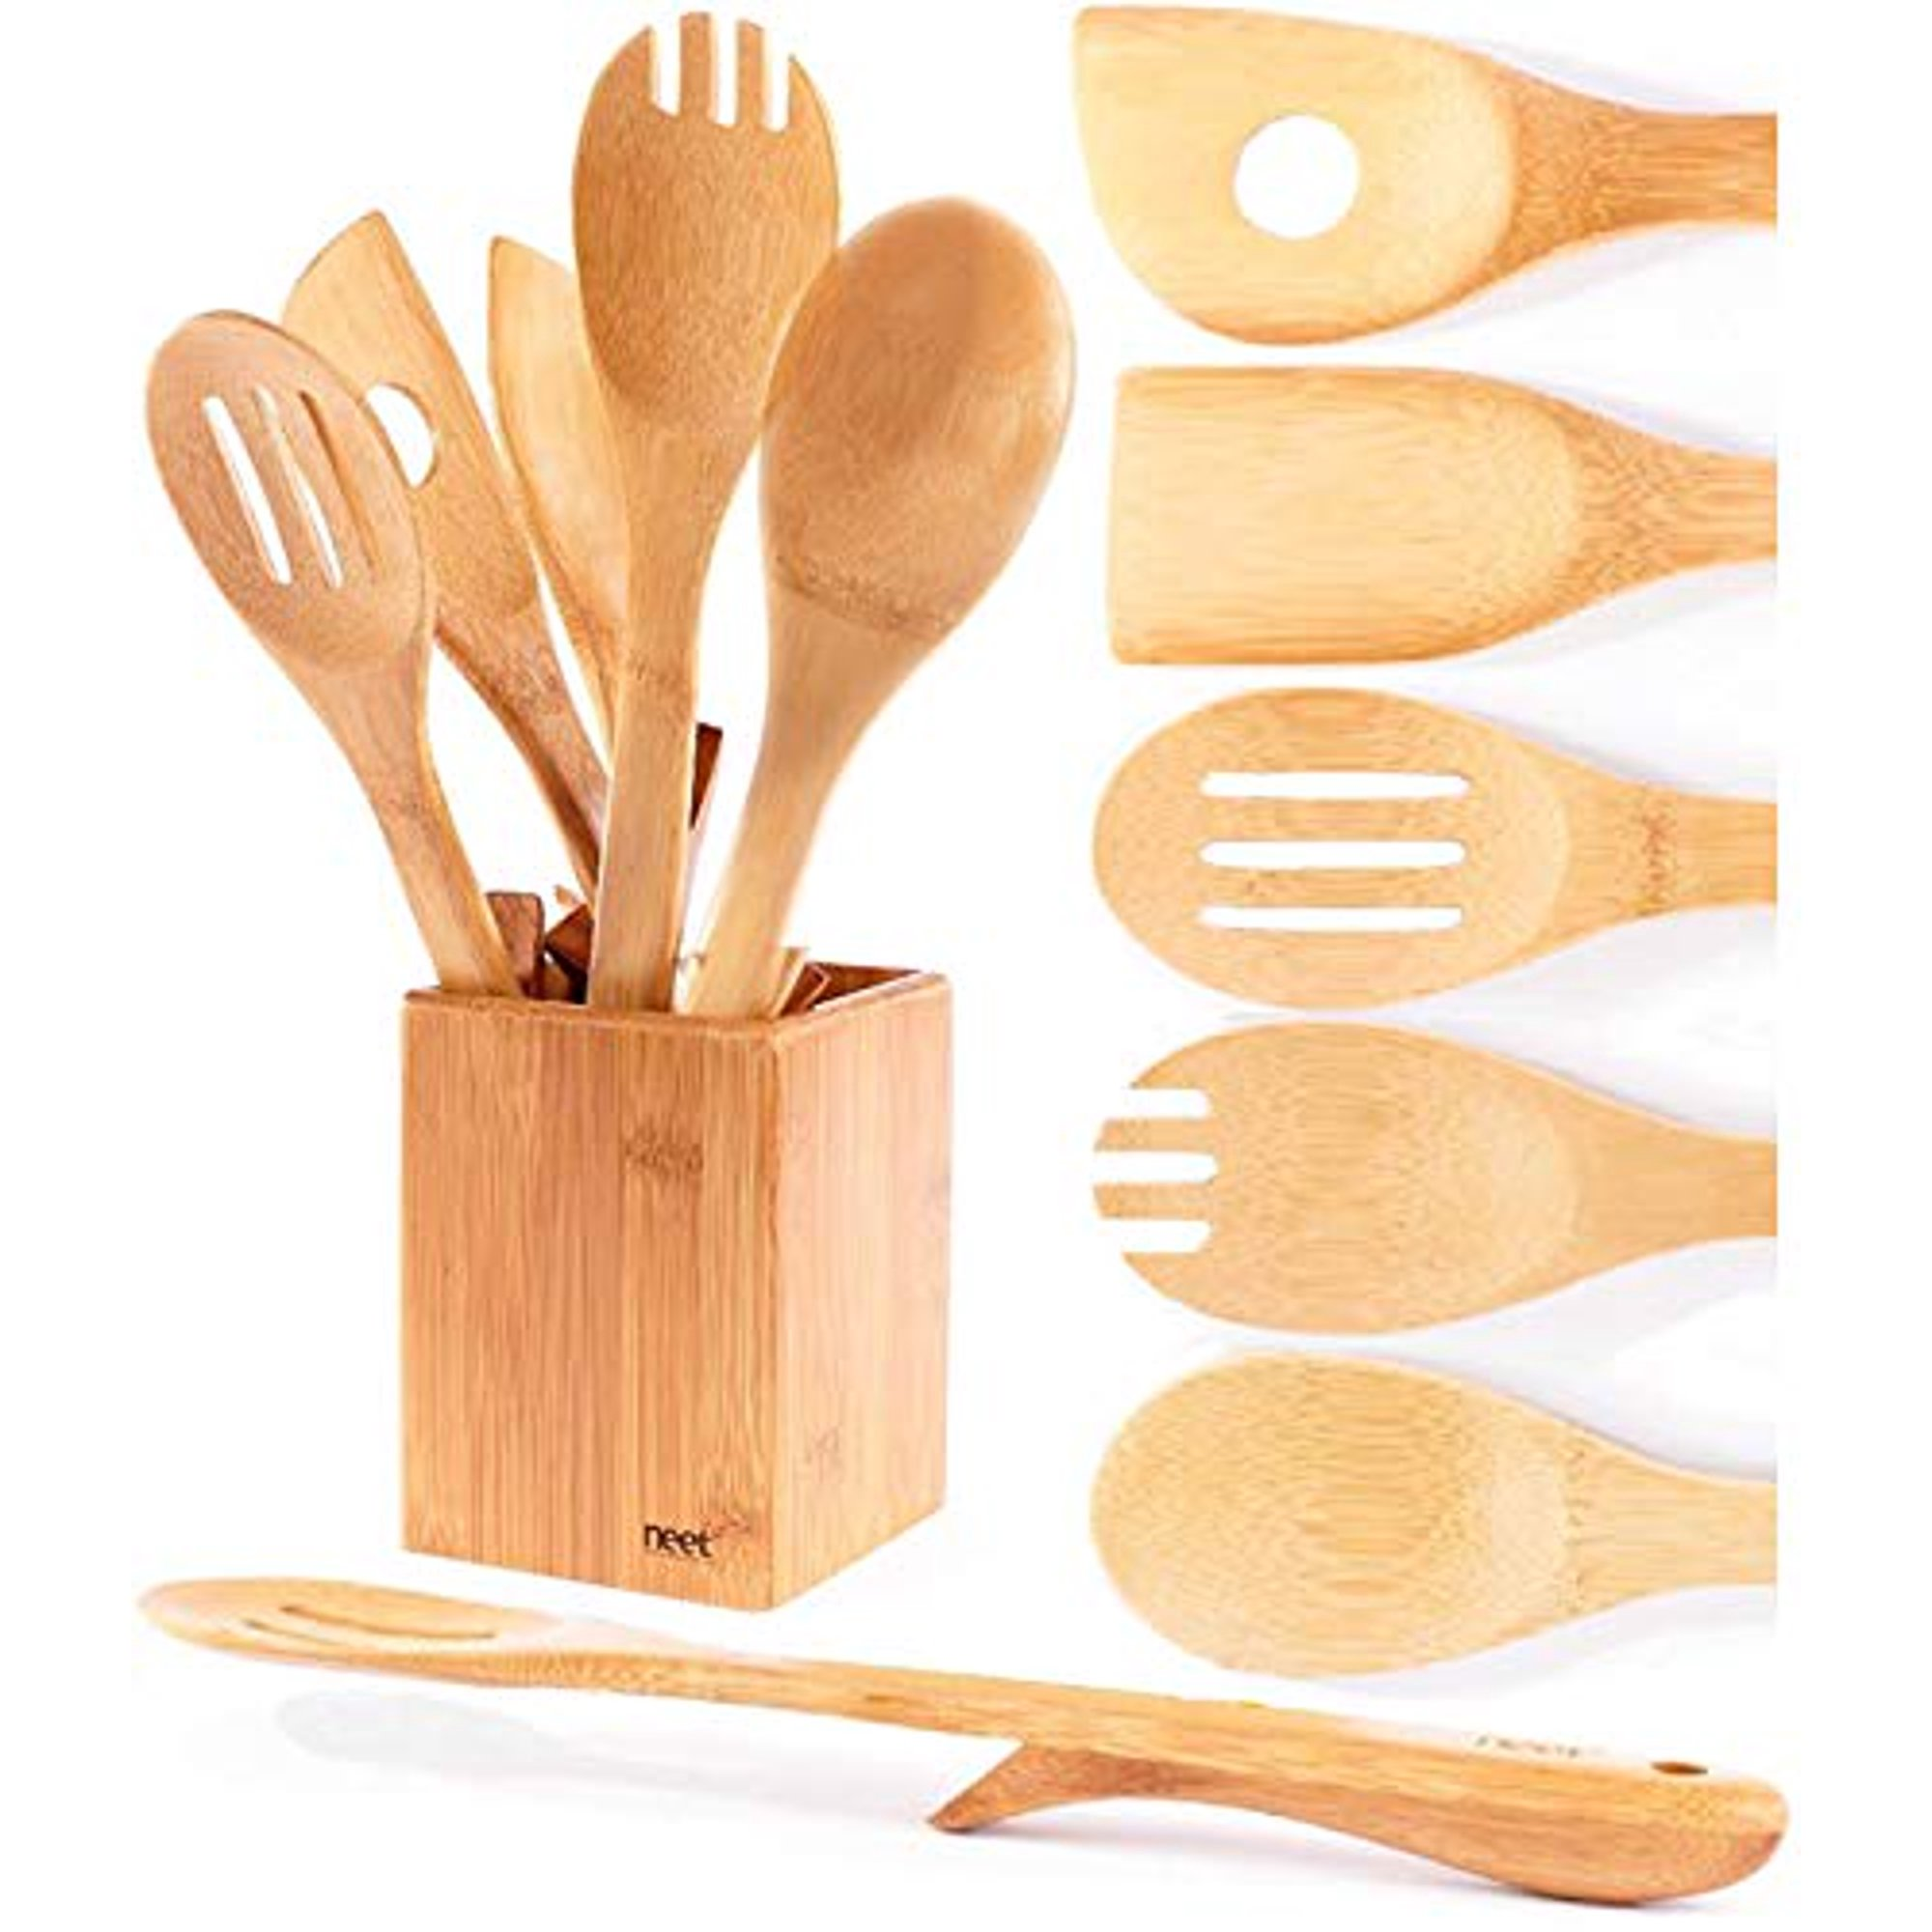 Organic Bamboo Cooking Utensils Set Unique Elevation Feature 6 Piece Set Wooden Spoons Spatula Kitchen Utensil Set High Heat Resistant Wood Serving Spoon Long Mixing Spoons Gift Idea Walmart Canada